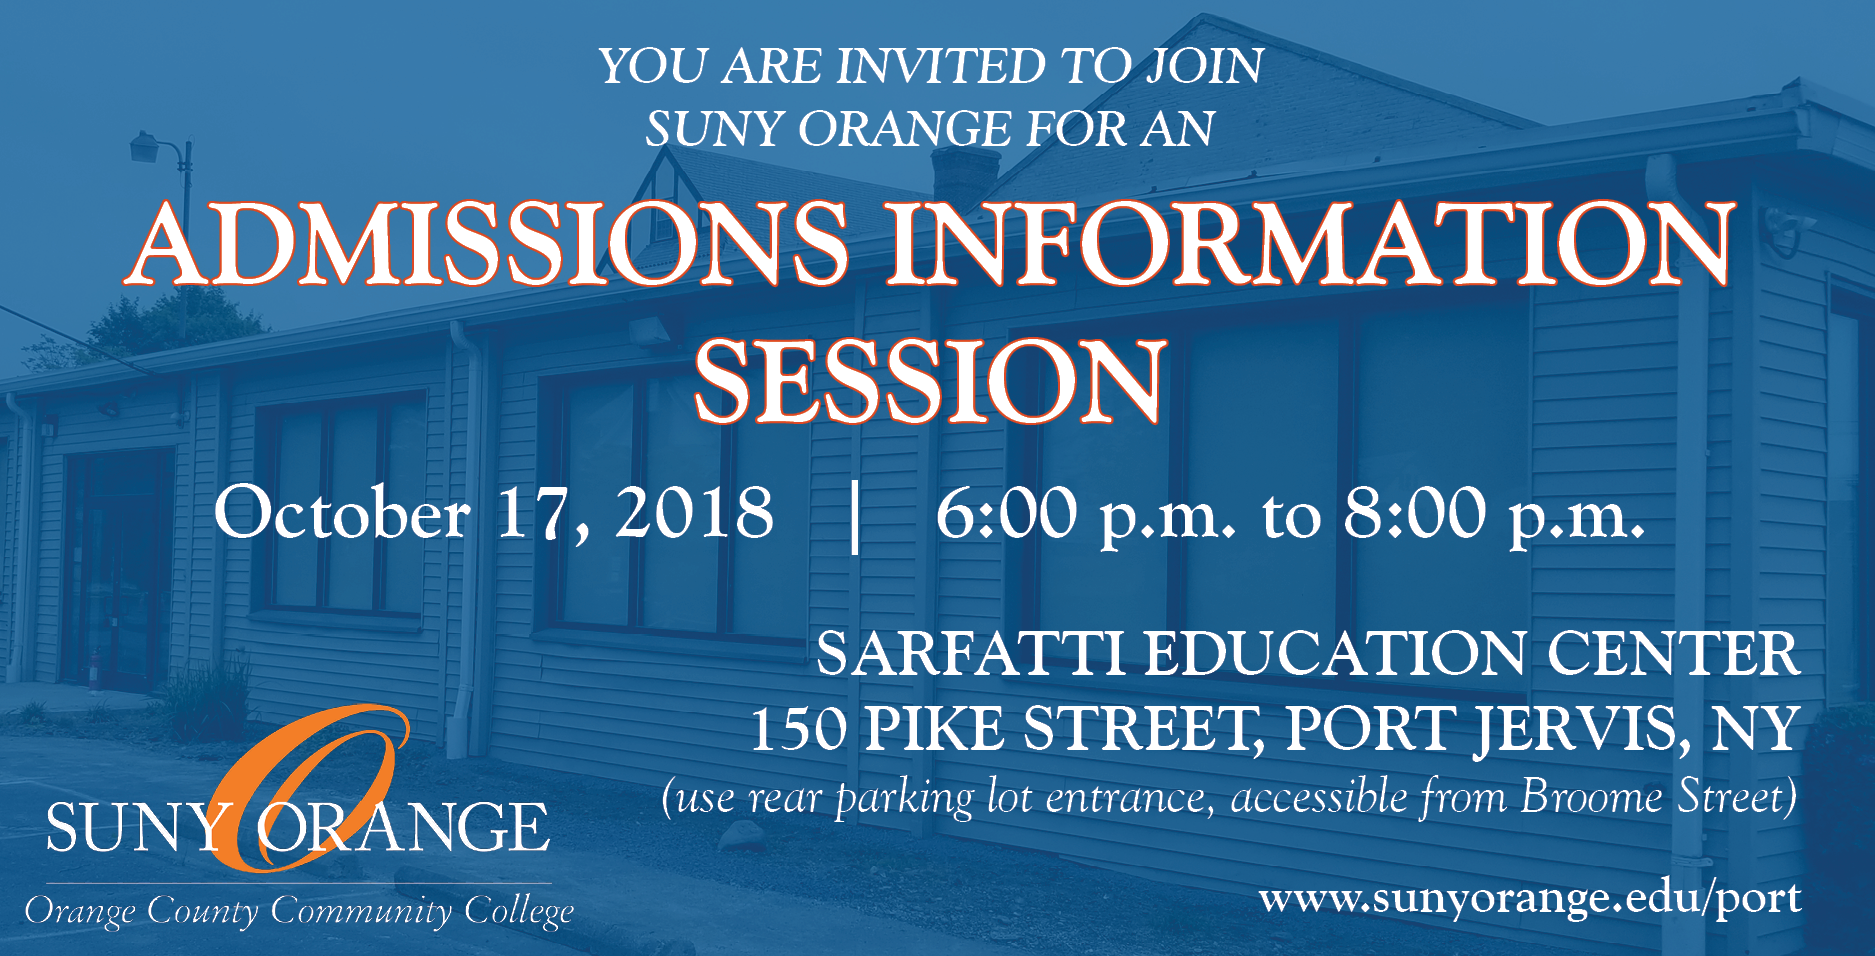 https://www.portjervisny.org/slider/suny-orange-admissions-port-jervis-info-session/